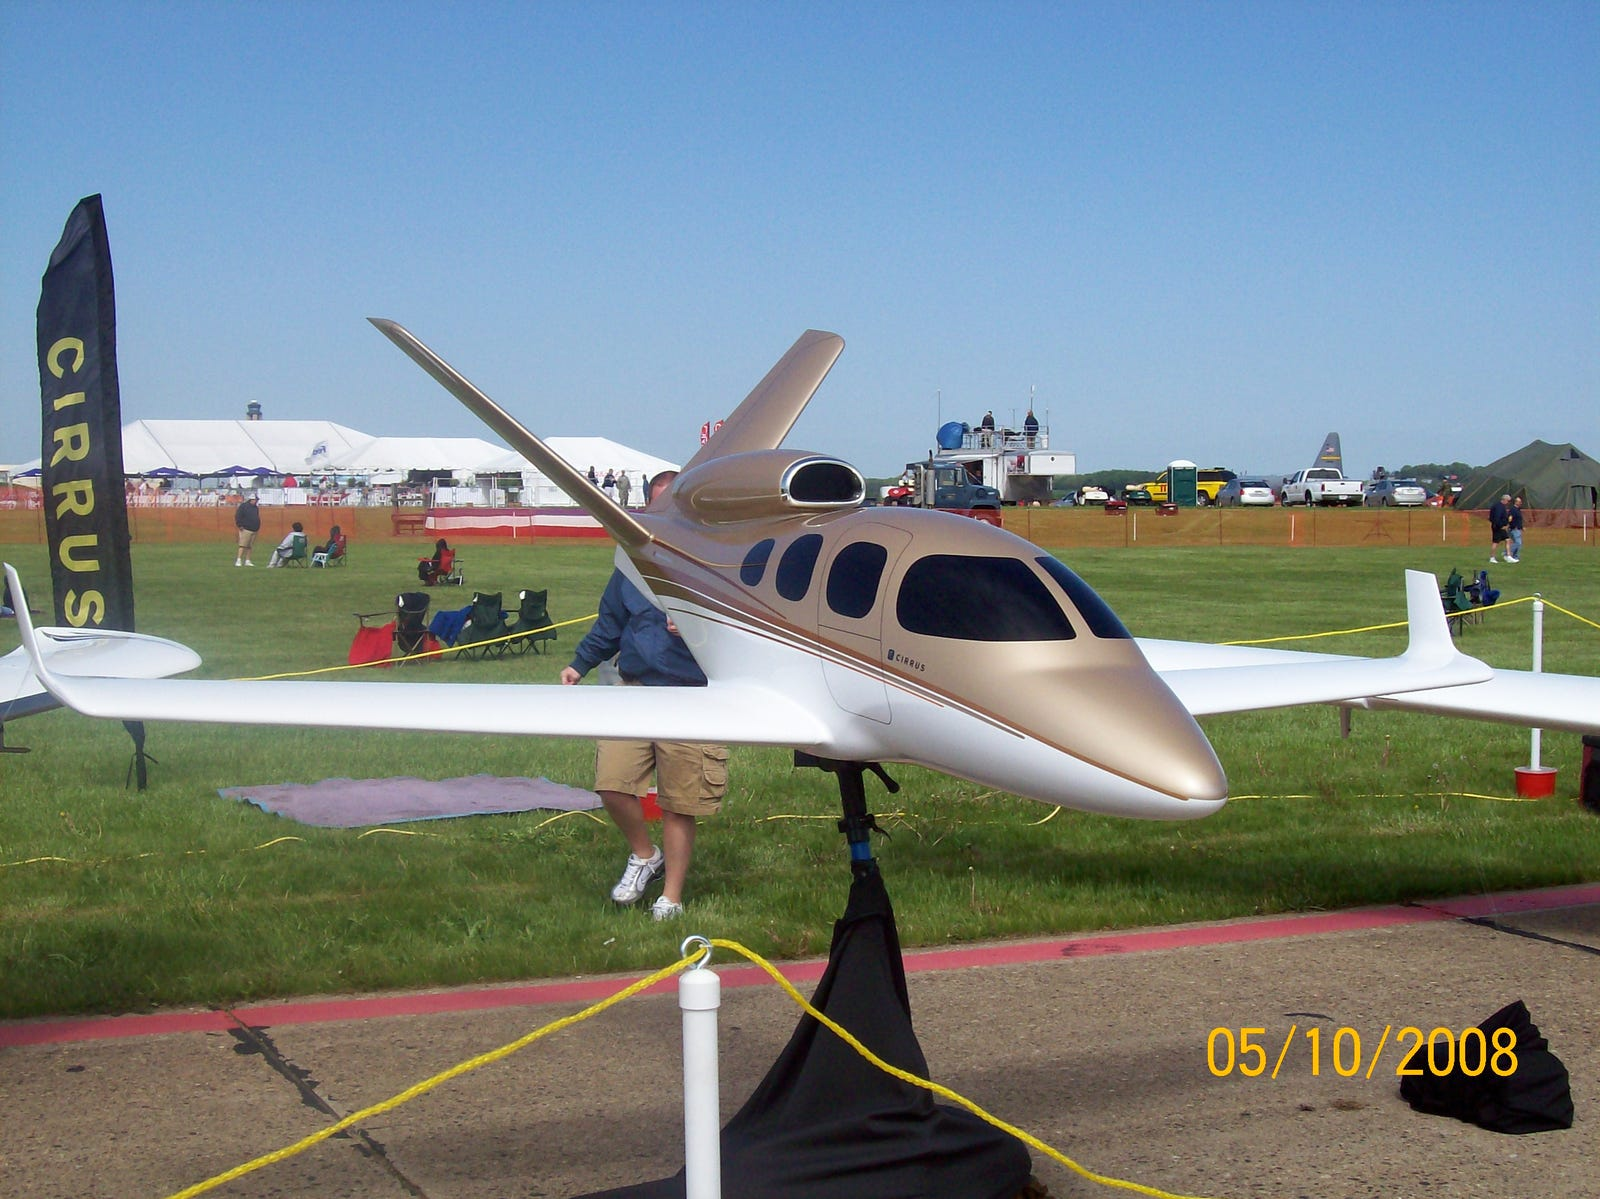 A model of the Cirrus Vision SF50 (aka the Vision Jet), still under development at the time